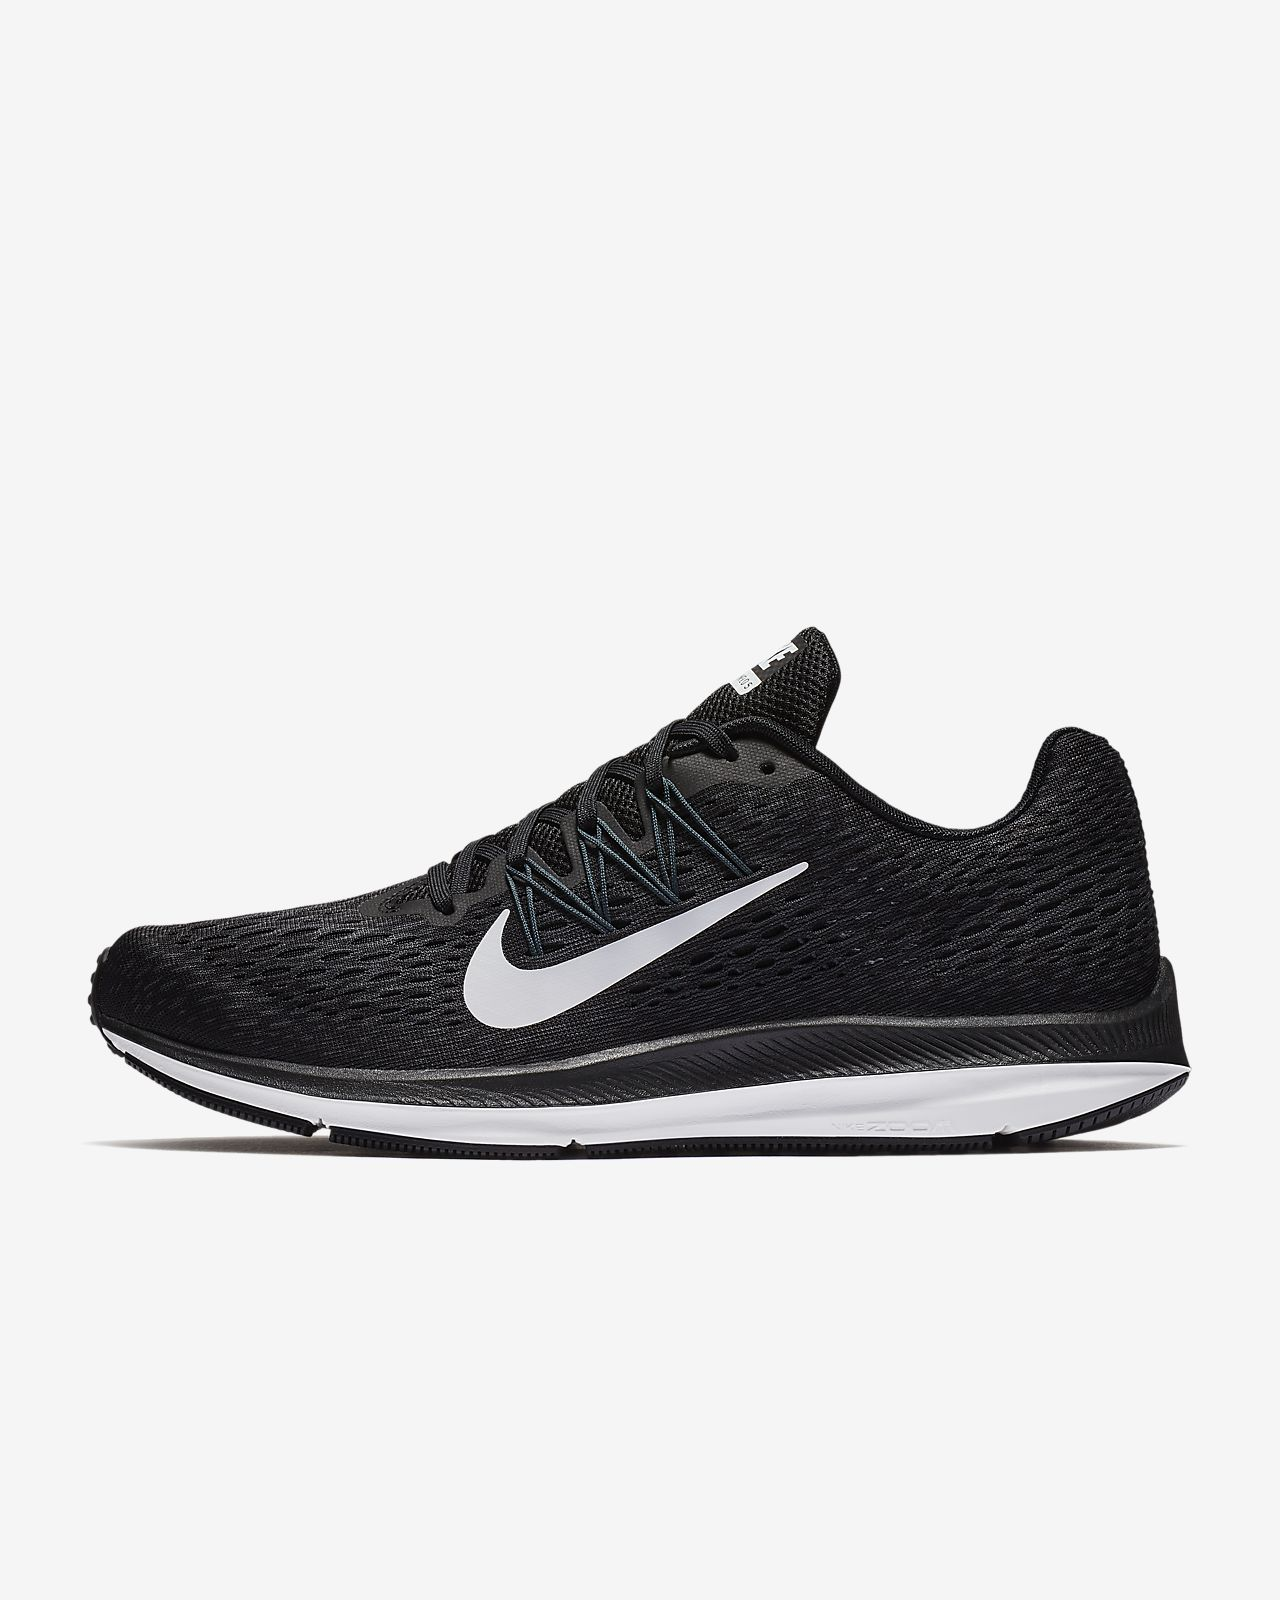 separation shoes 30f32 b469d Chaussure de running Nike Air Zoom Winflo 5 pour Homme